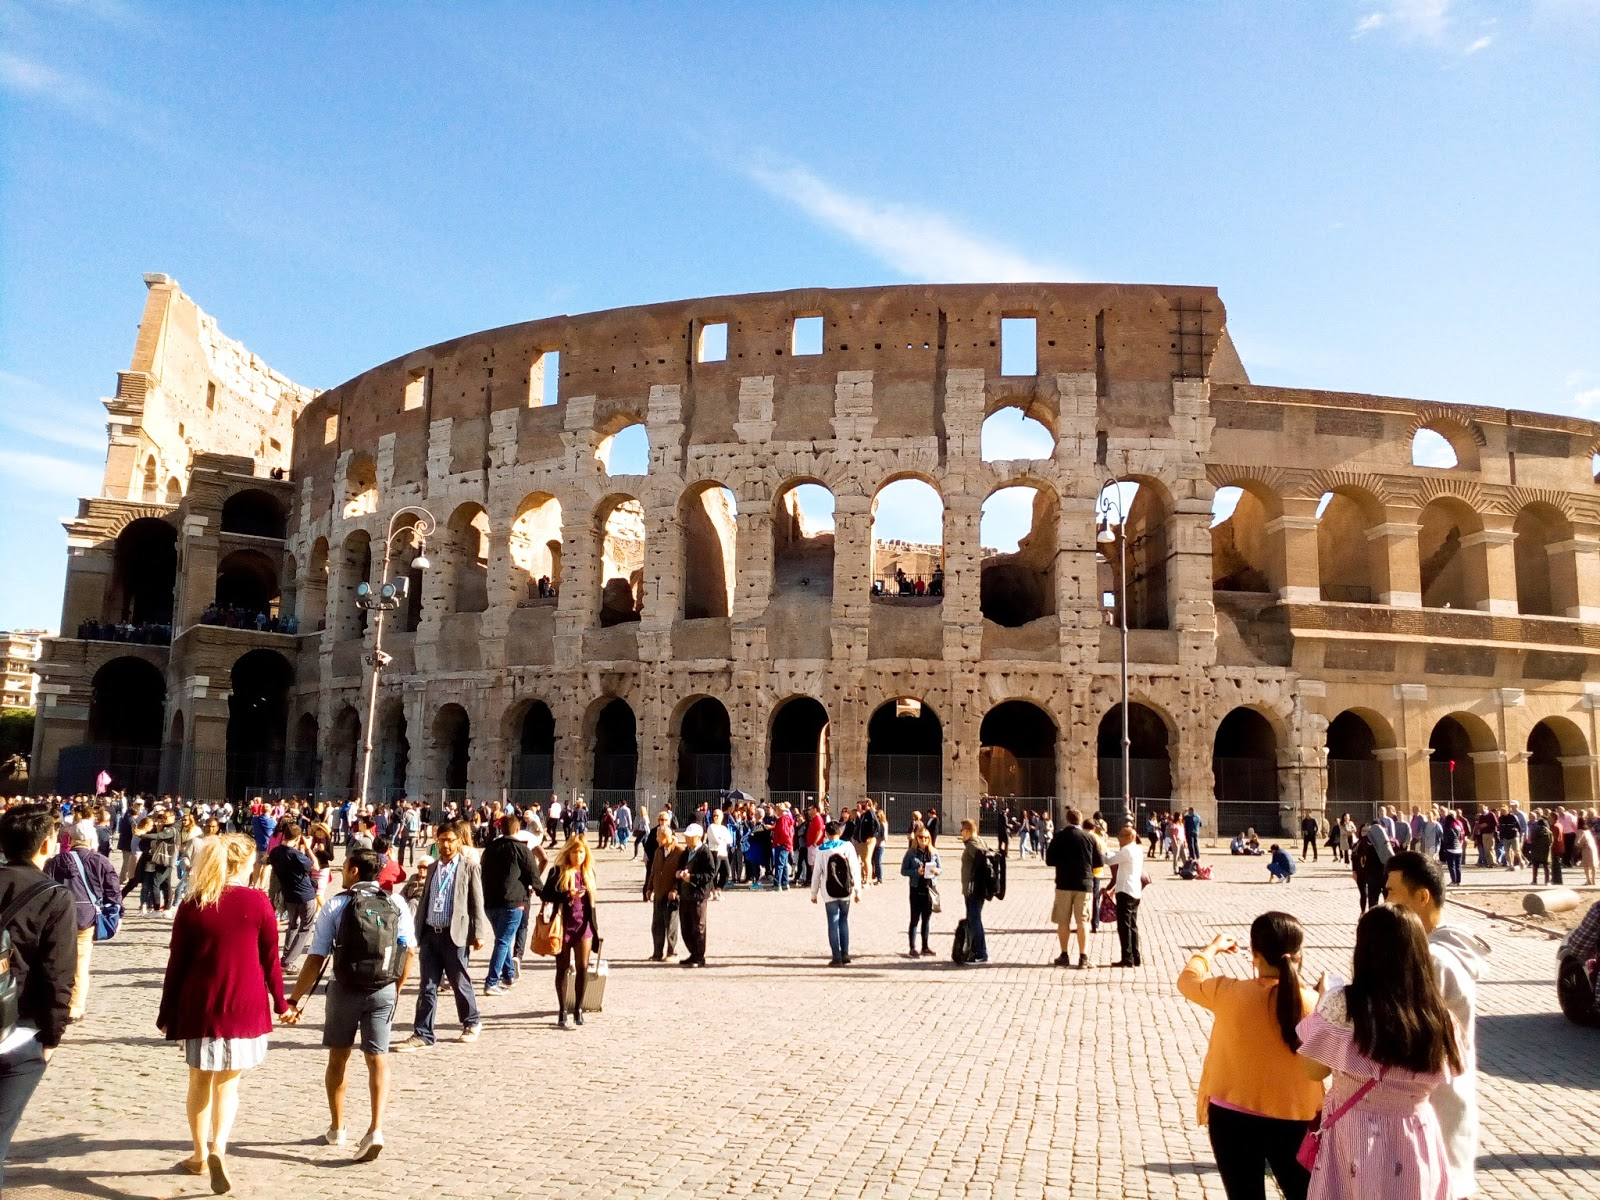 Travel back in time at The Colosseum